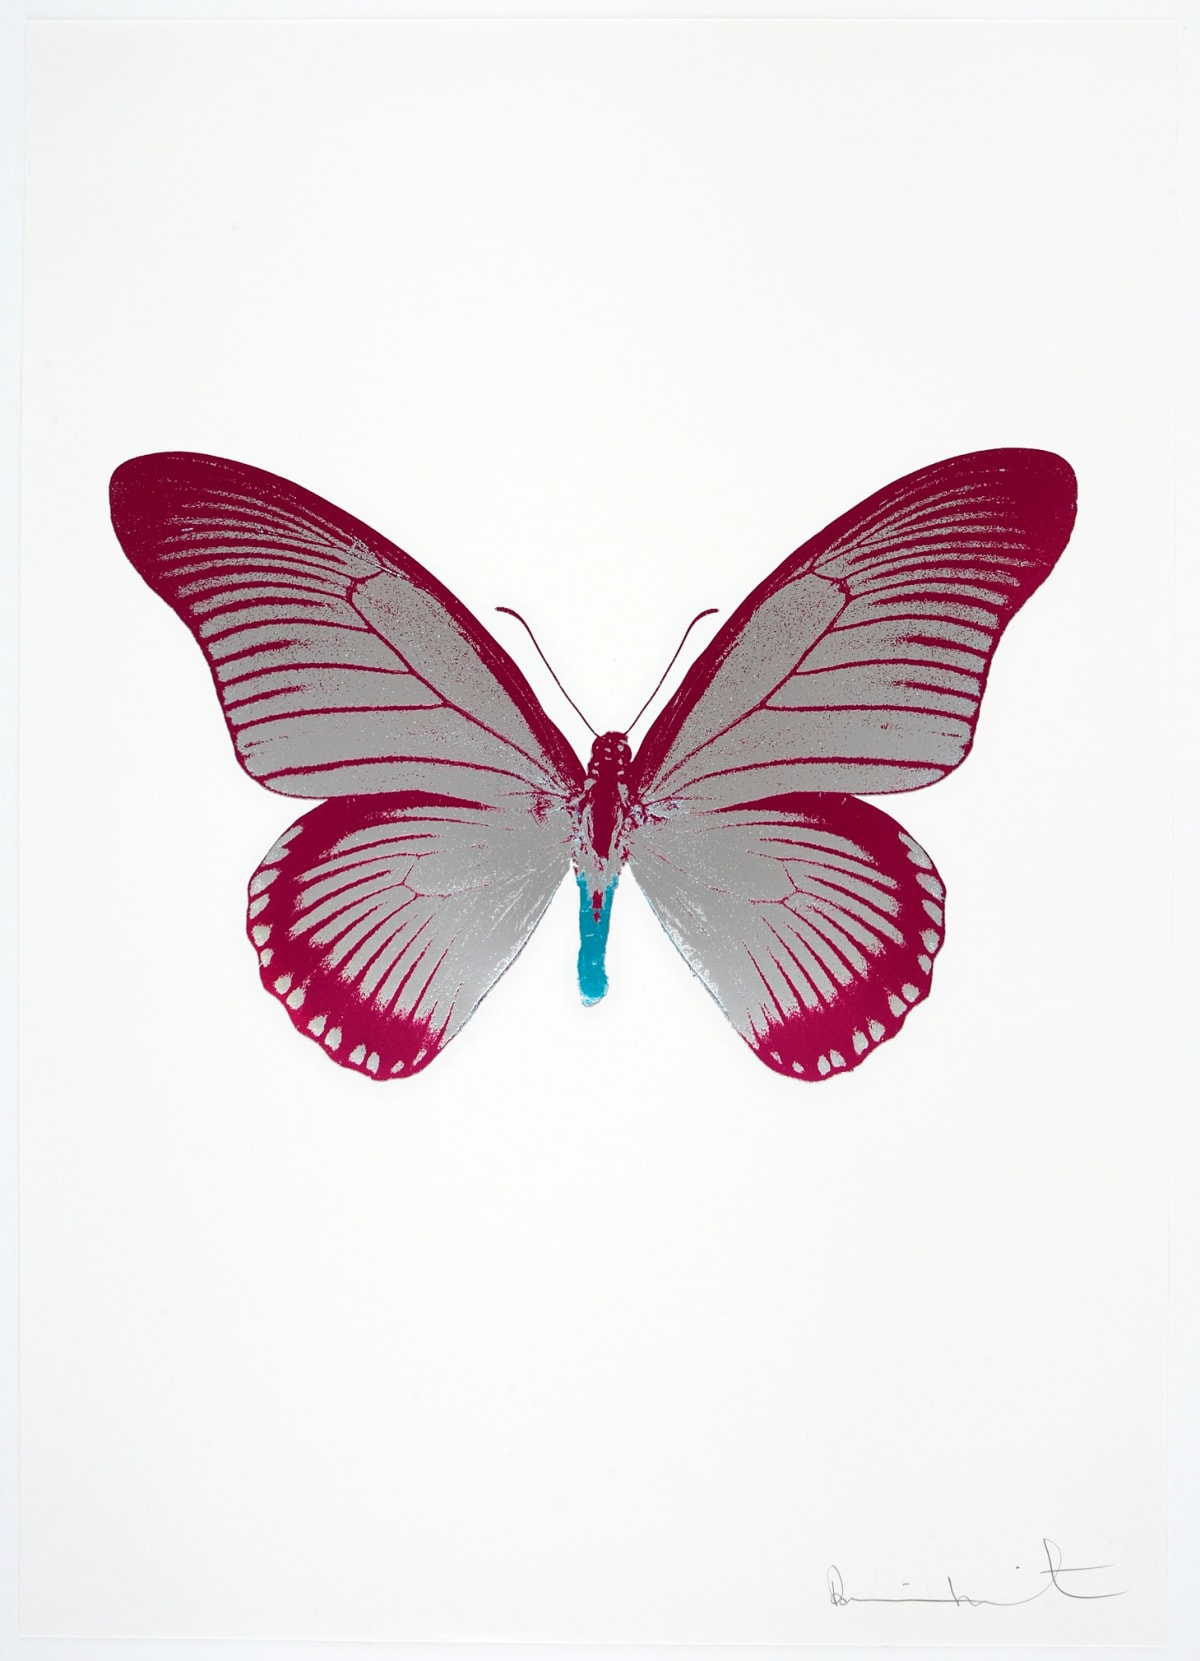 Damien Hirst The Souls IV - Silver Gloss/Fuchsia Pink/Topaz, 2010 3 colour foil block on 300gsm Arches 88 archival paper. Signed and numbered. Published by Paul Stolper and Other Criteria 72 x 51cm OC8029 / 1418-52 Edition of 15